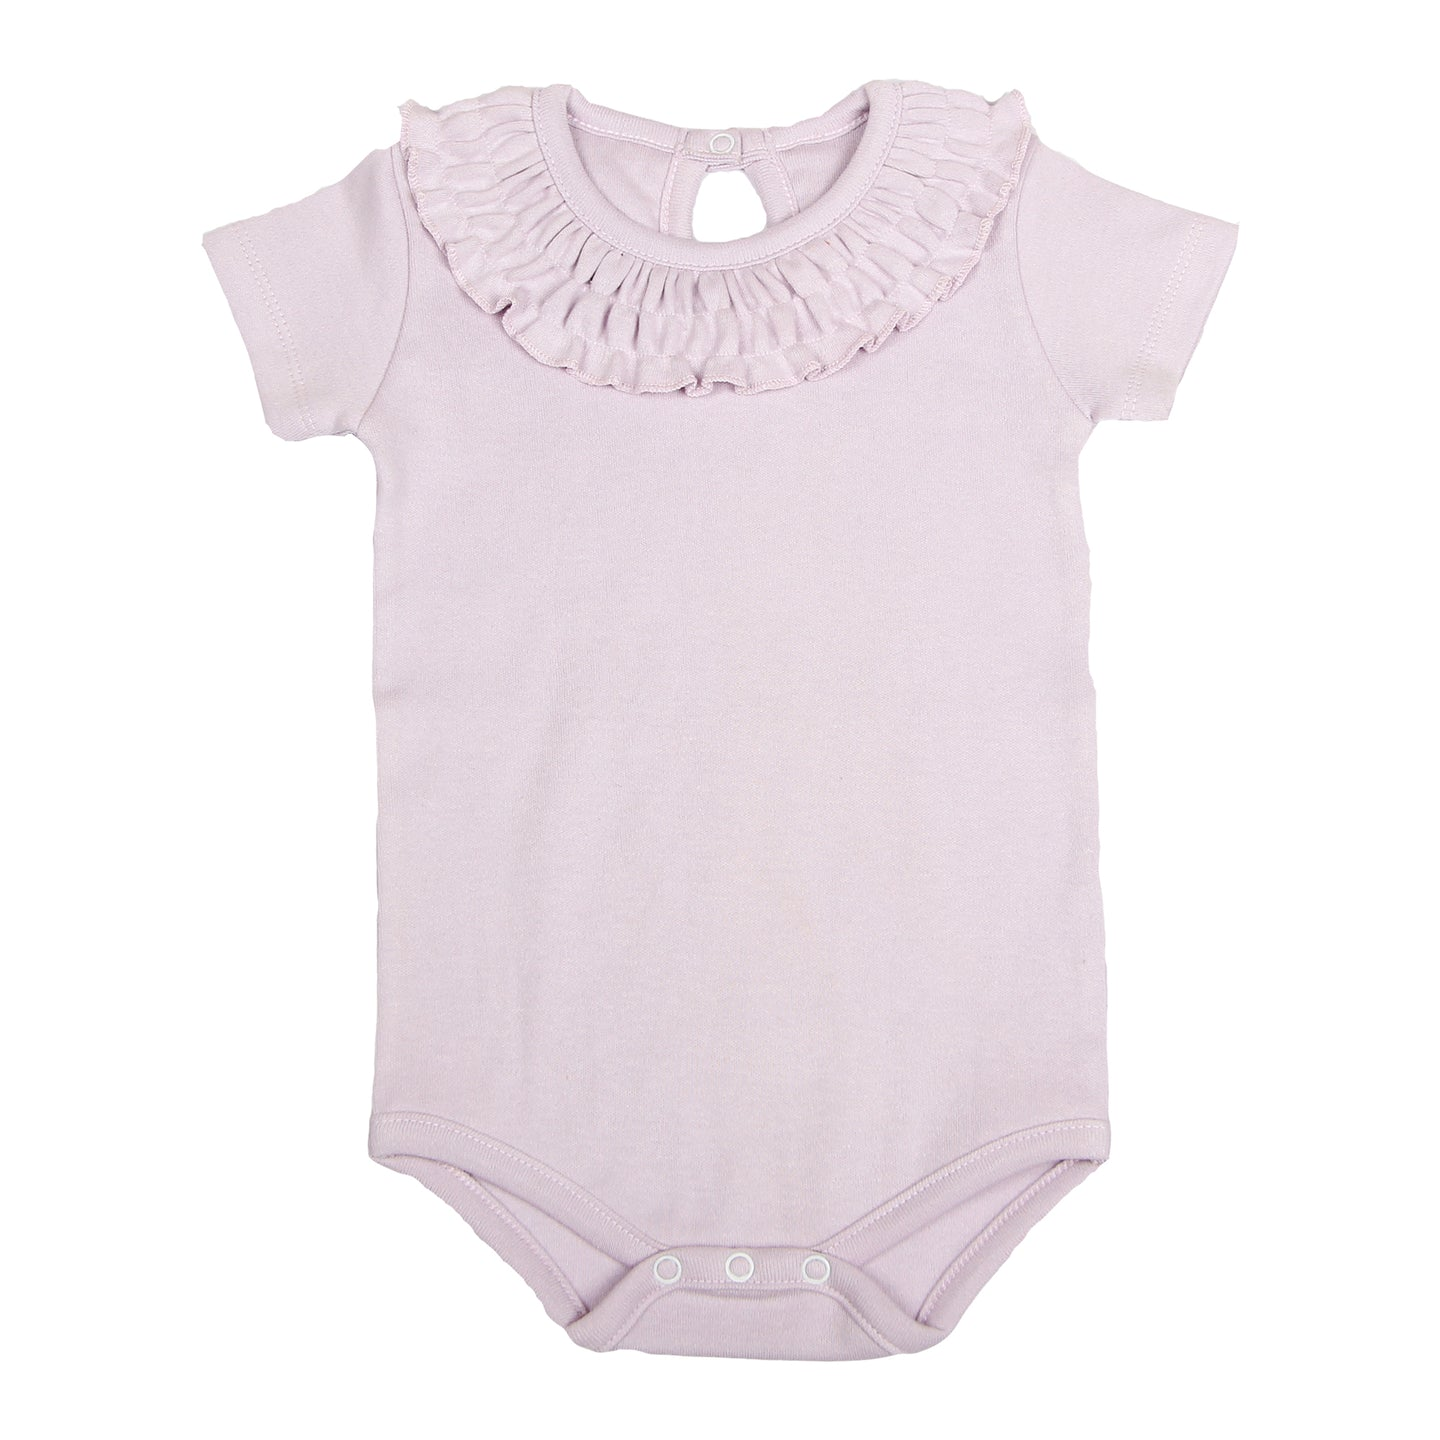 FH-5012 - Baby Girl Bodysuit/Romper - Frill On Neck Purple Solid